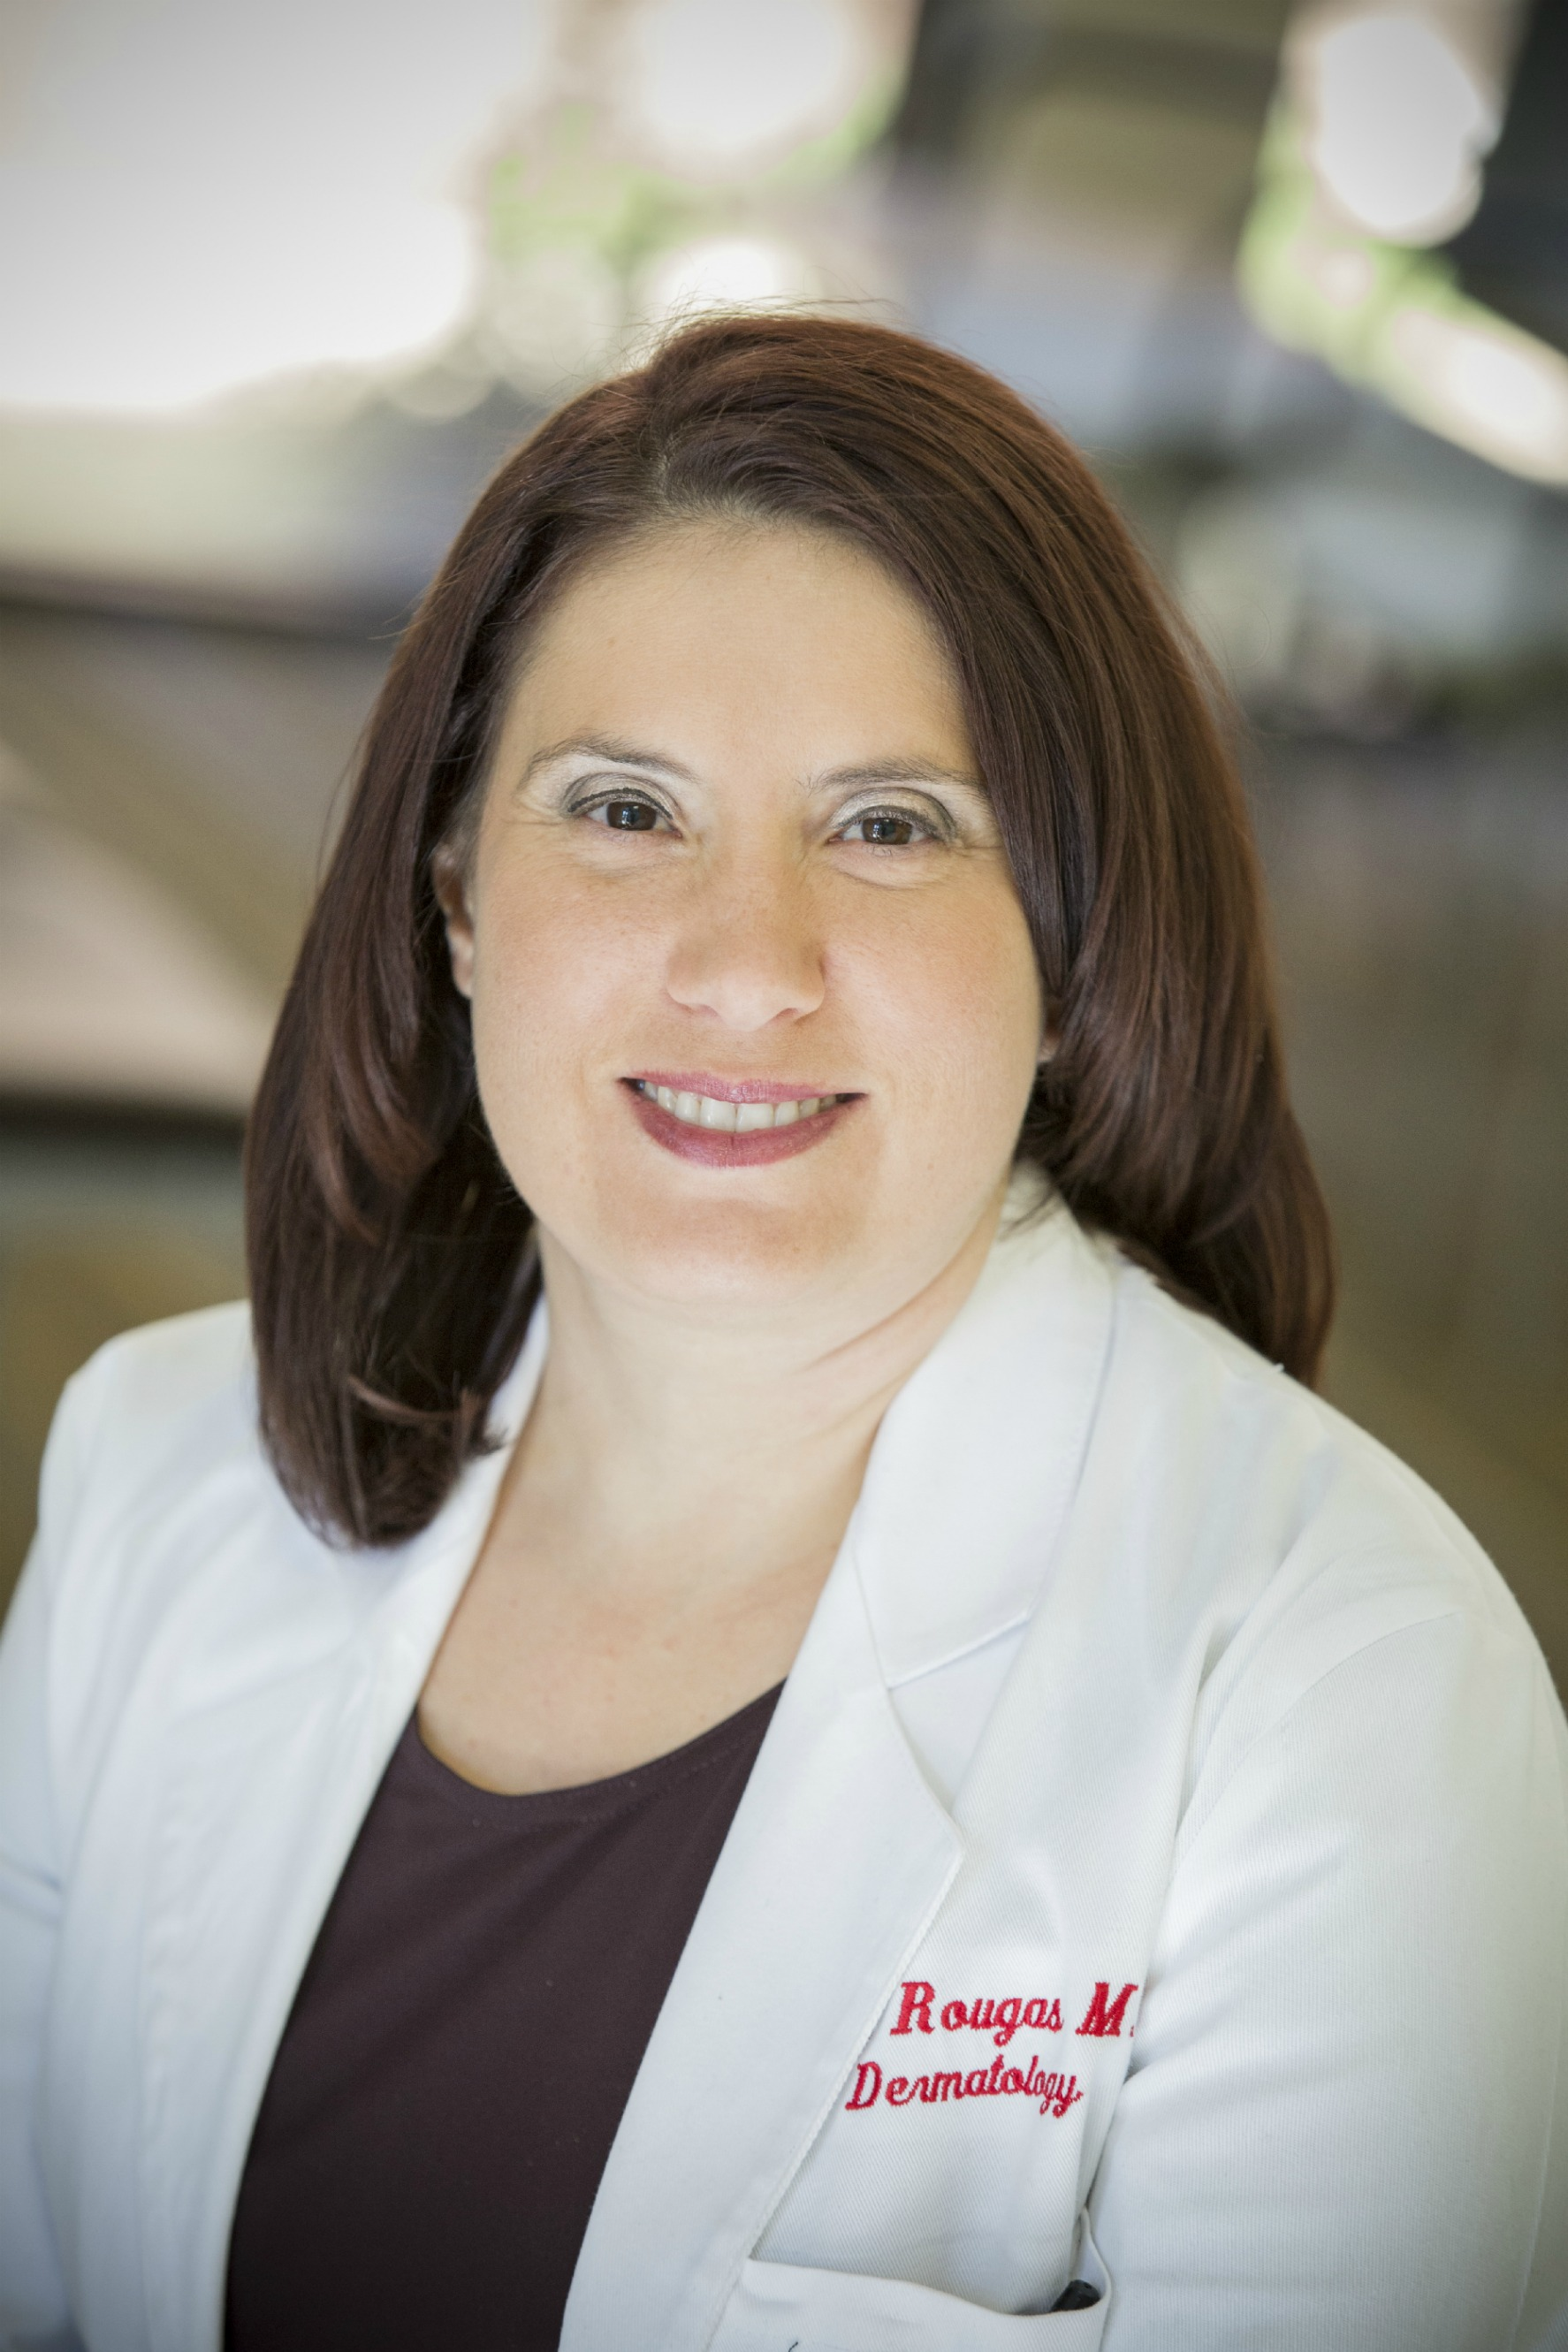 Dr. Stacie Rougas